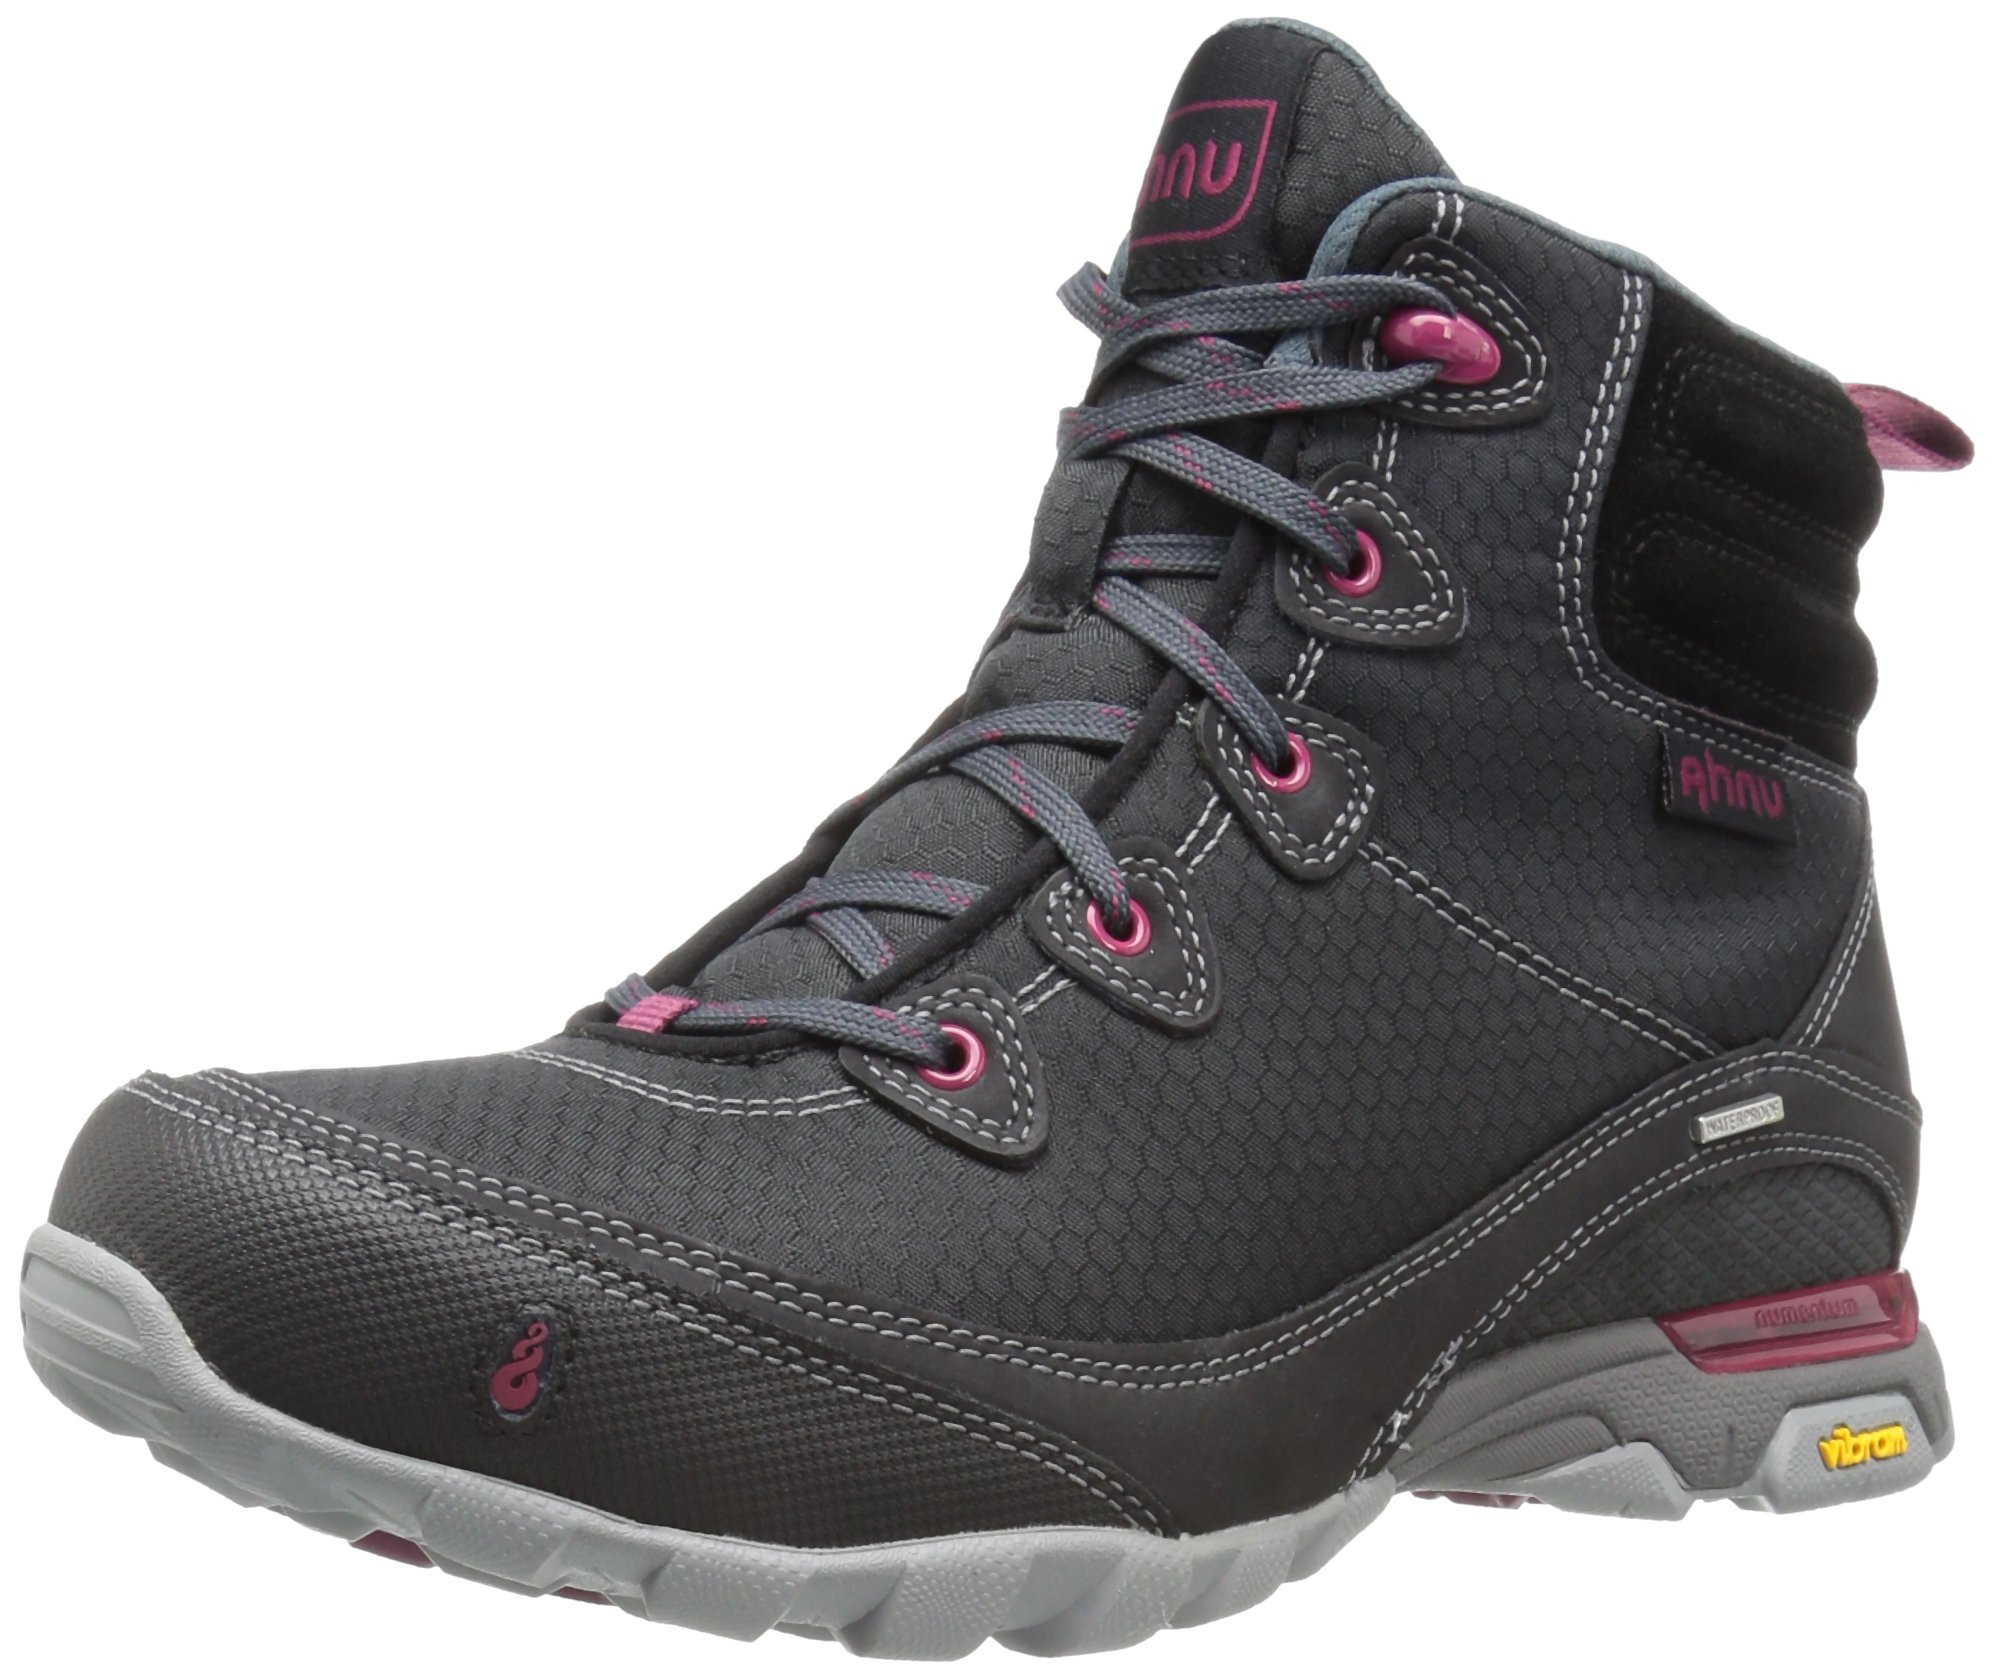 Ahnu Women's W Sugarpine Waterproof Hiking Boot, Black Basic, 7.5 M US